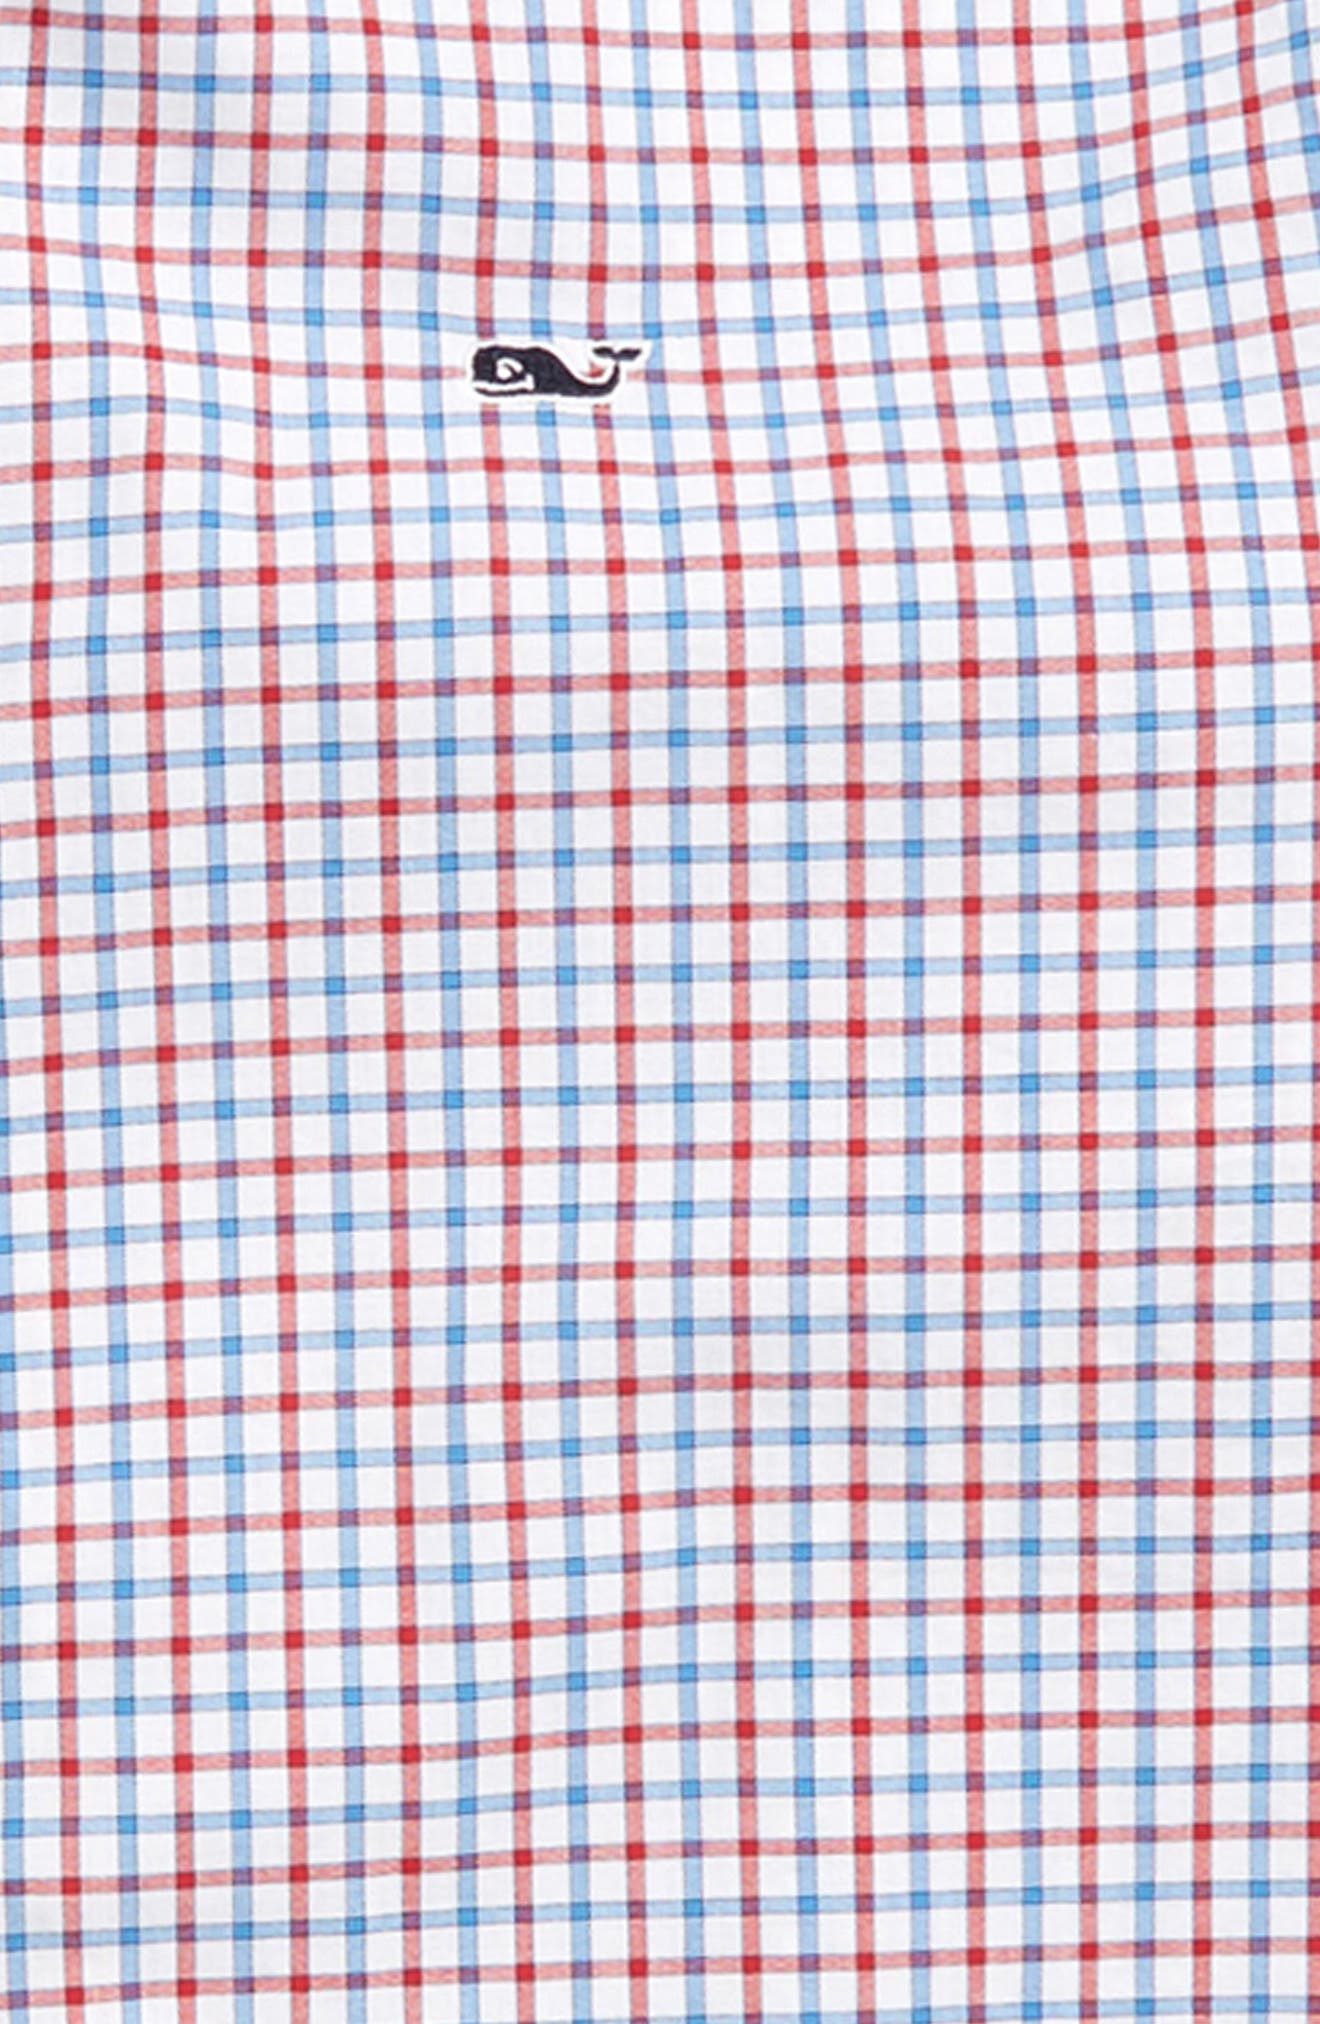 Clark Cove Check Whale Shirt,                             Alternate thumbnail 2, color,                             Lighthouse Red